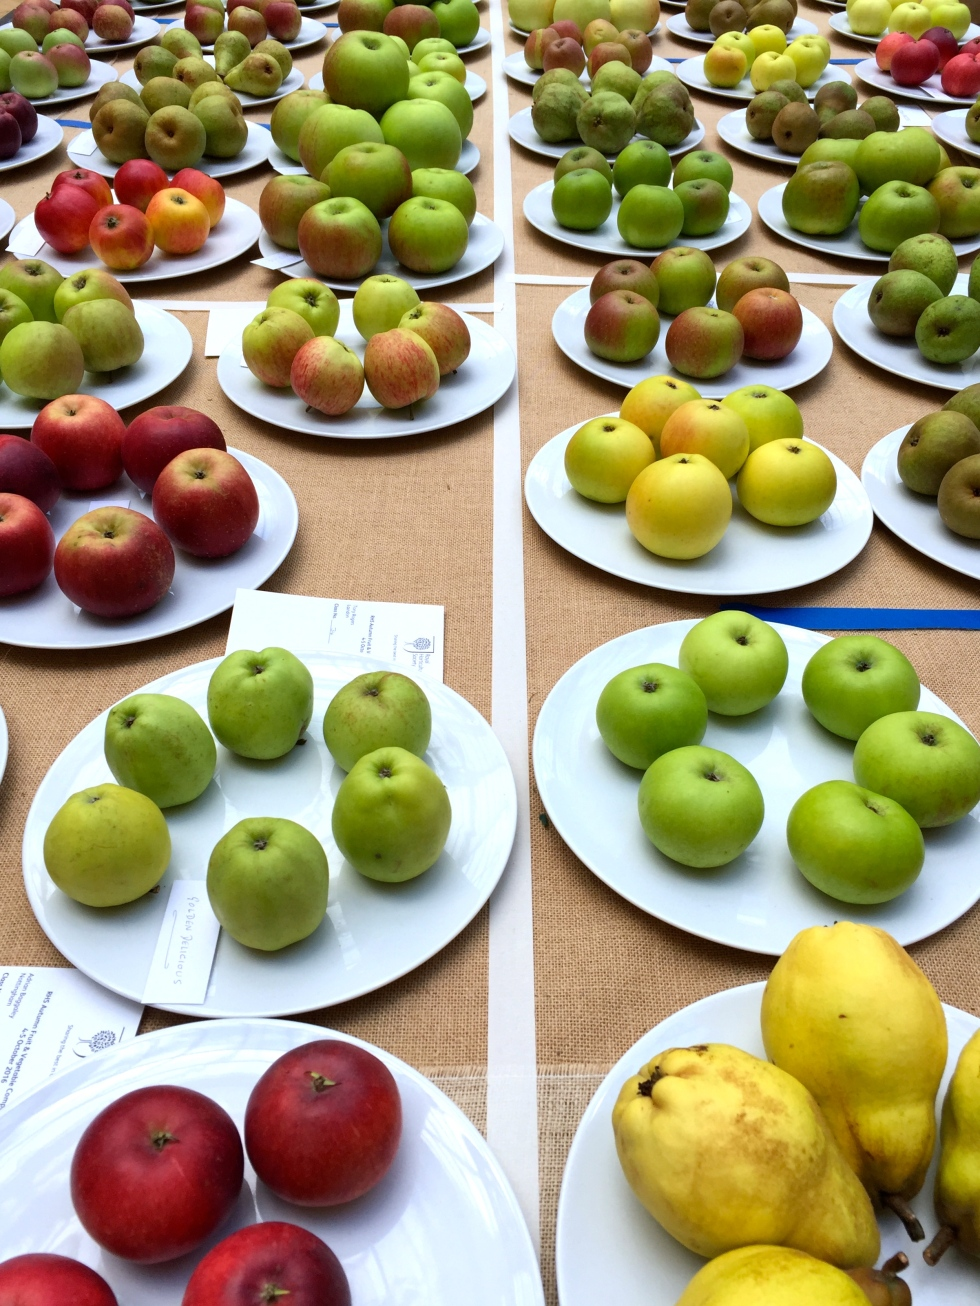 Row upon row of apples in the competition classes